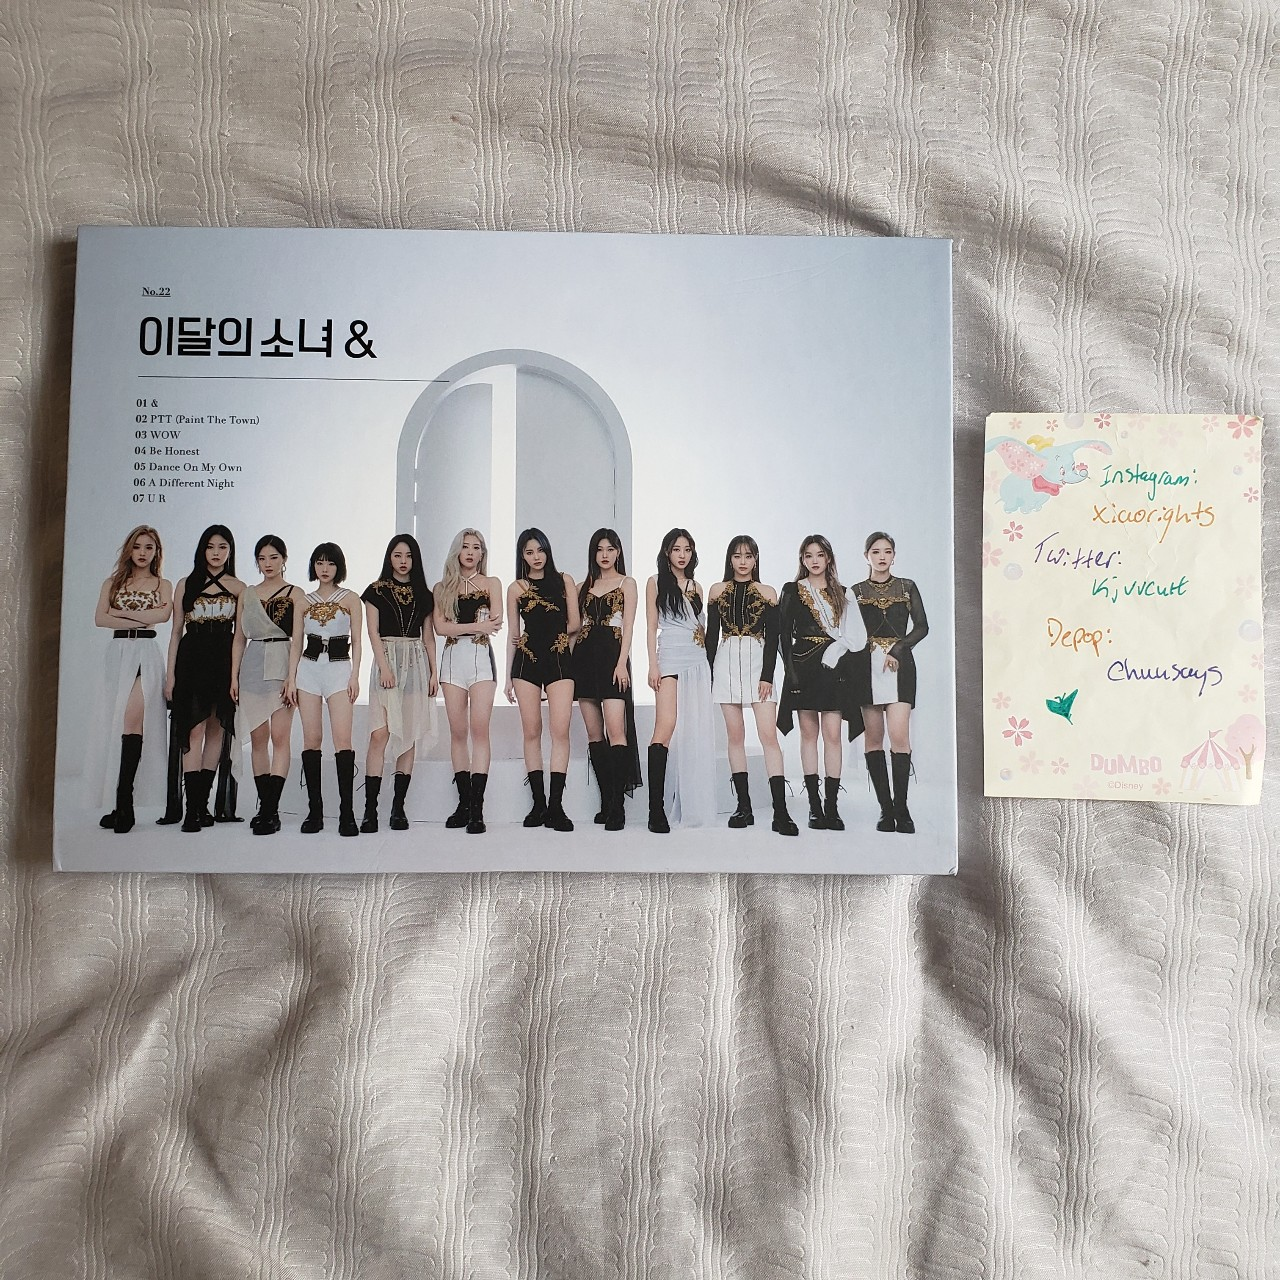 Product Image 1 - LOONA & [and] album (b